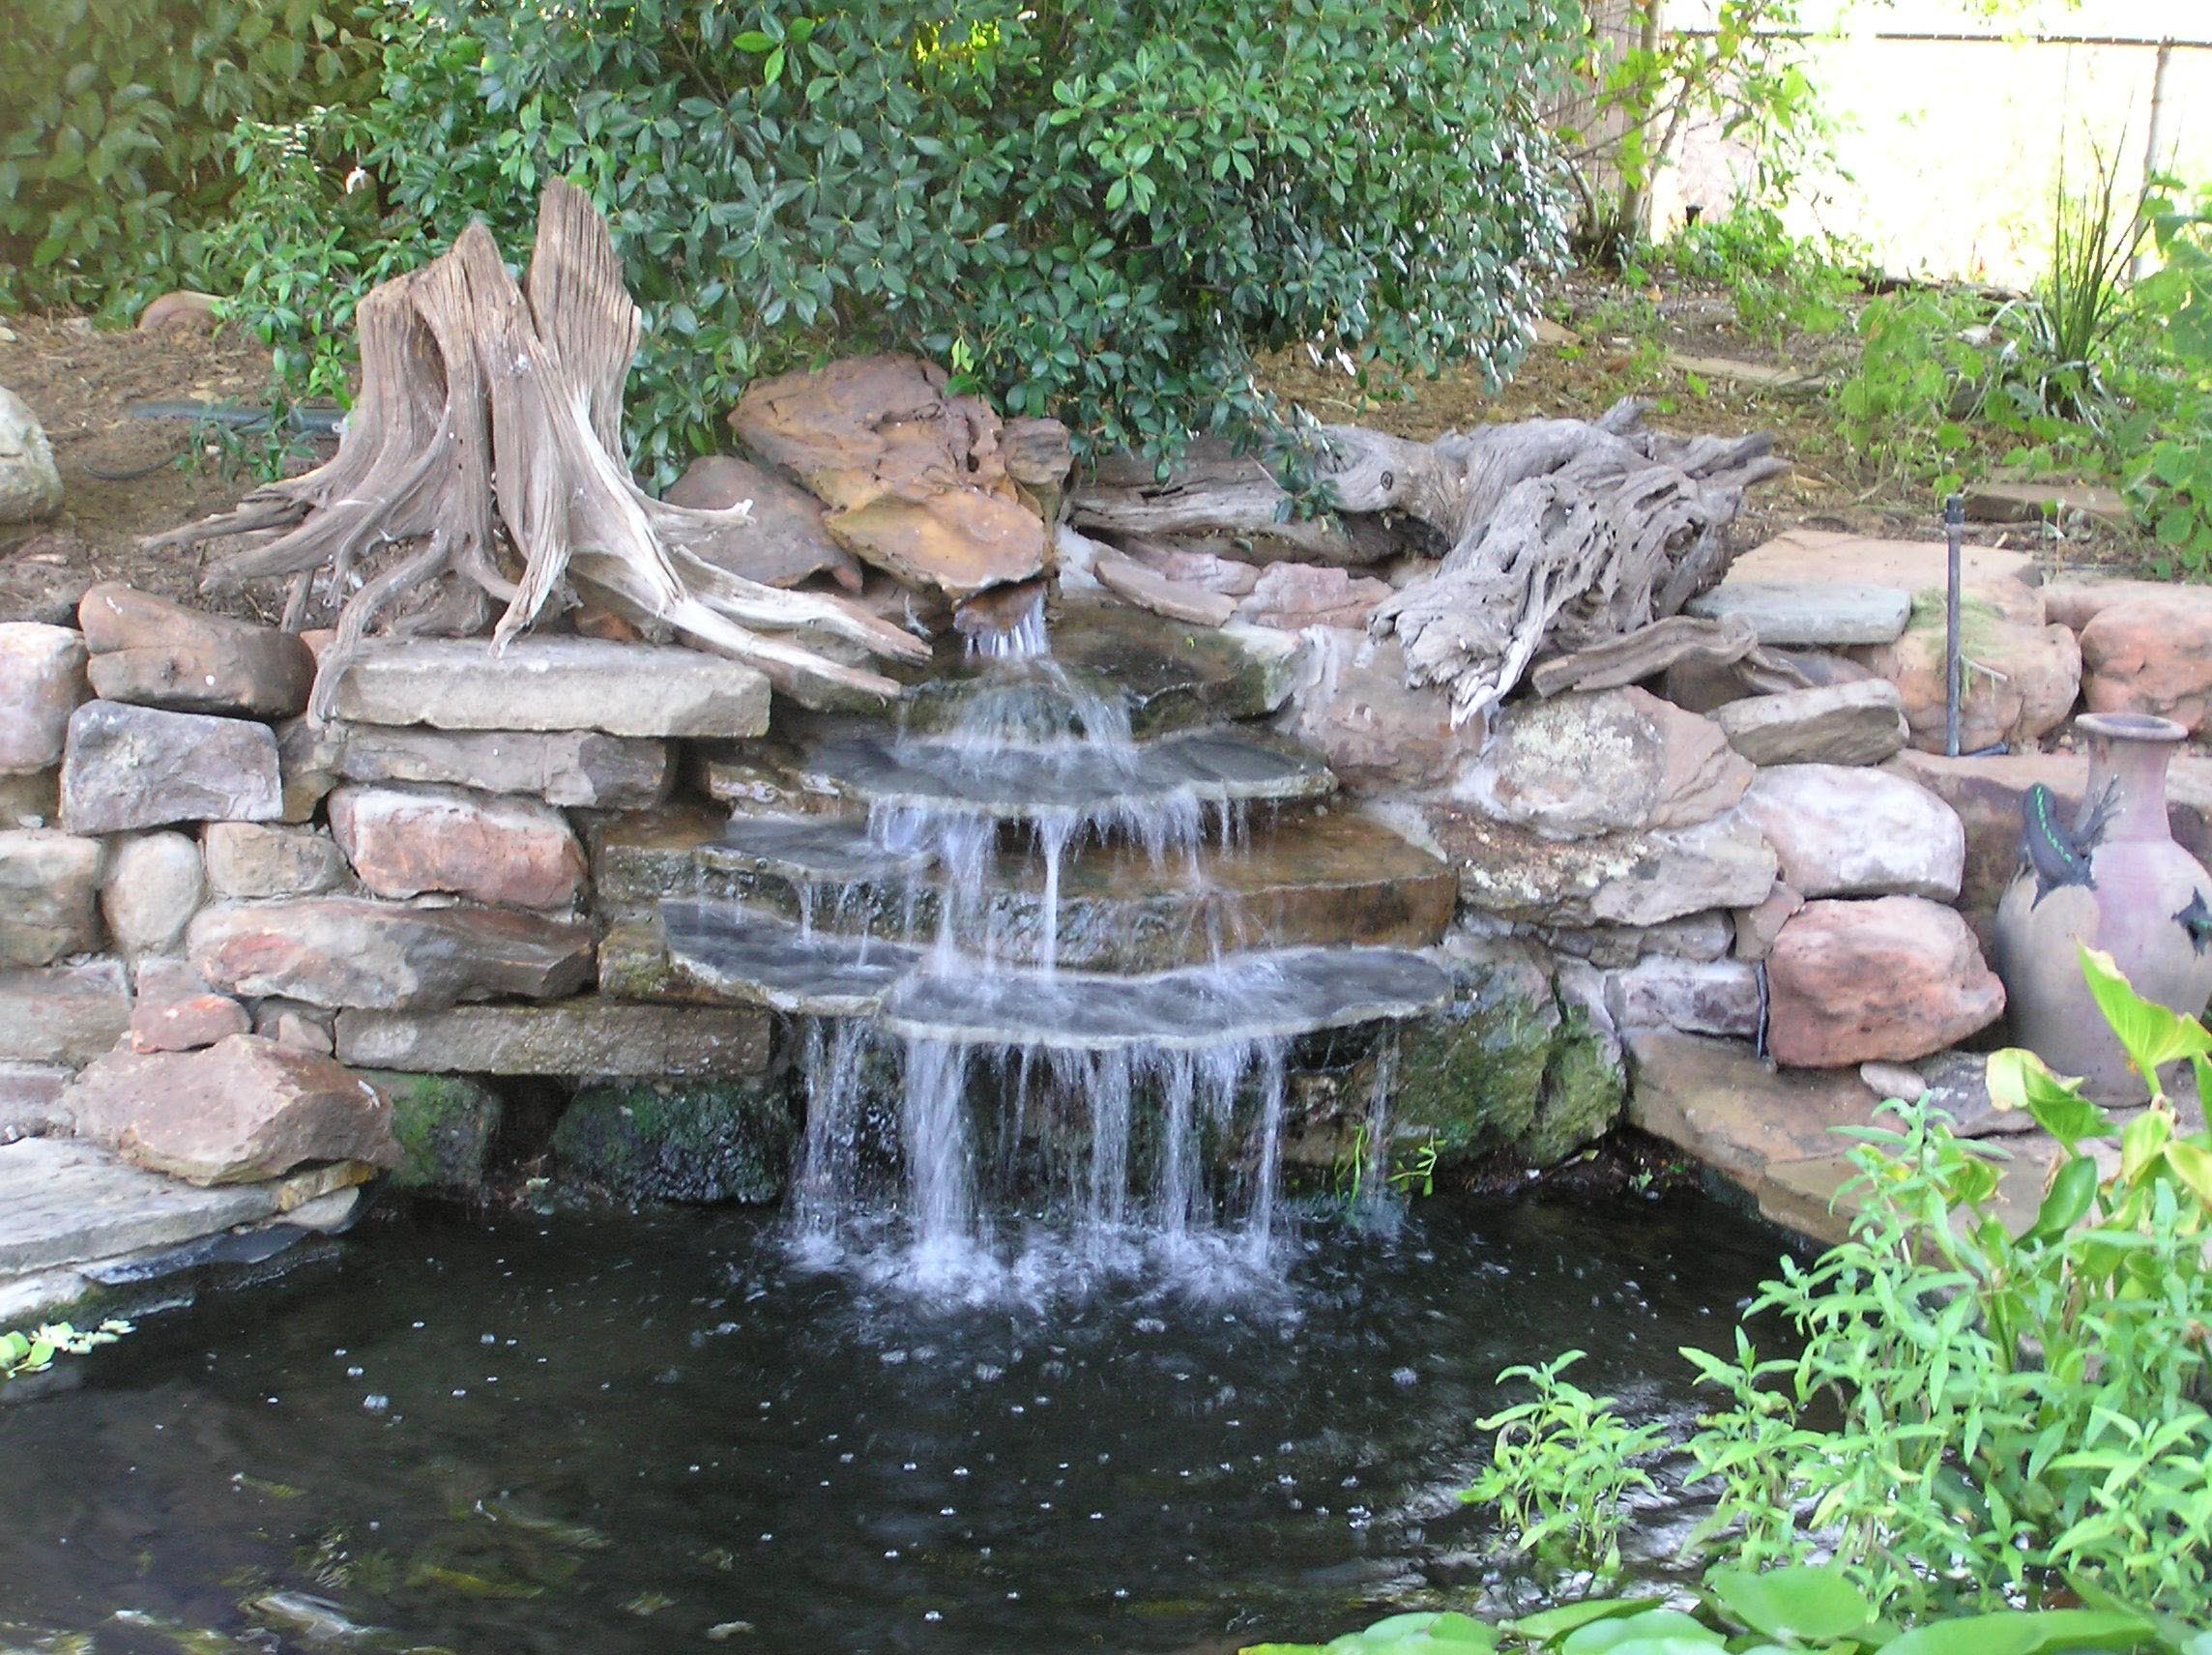 Garden pond waterfall designs backyard design ideas for Garden ponds designs pictures